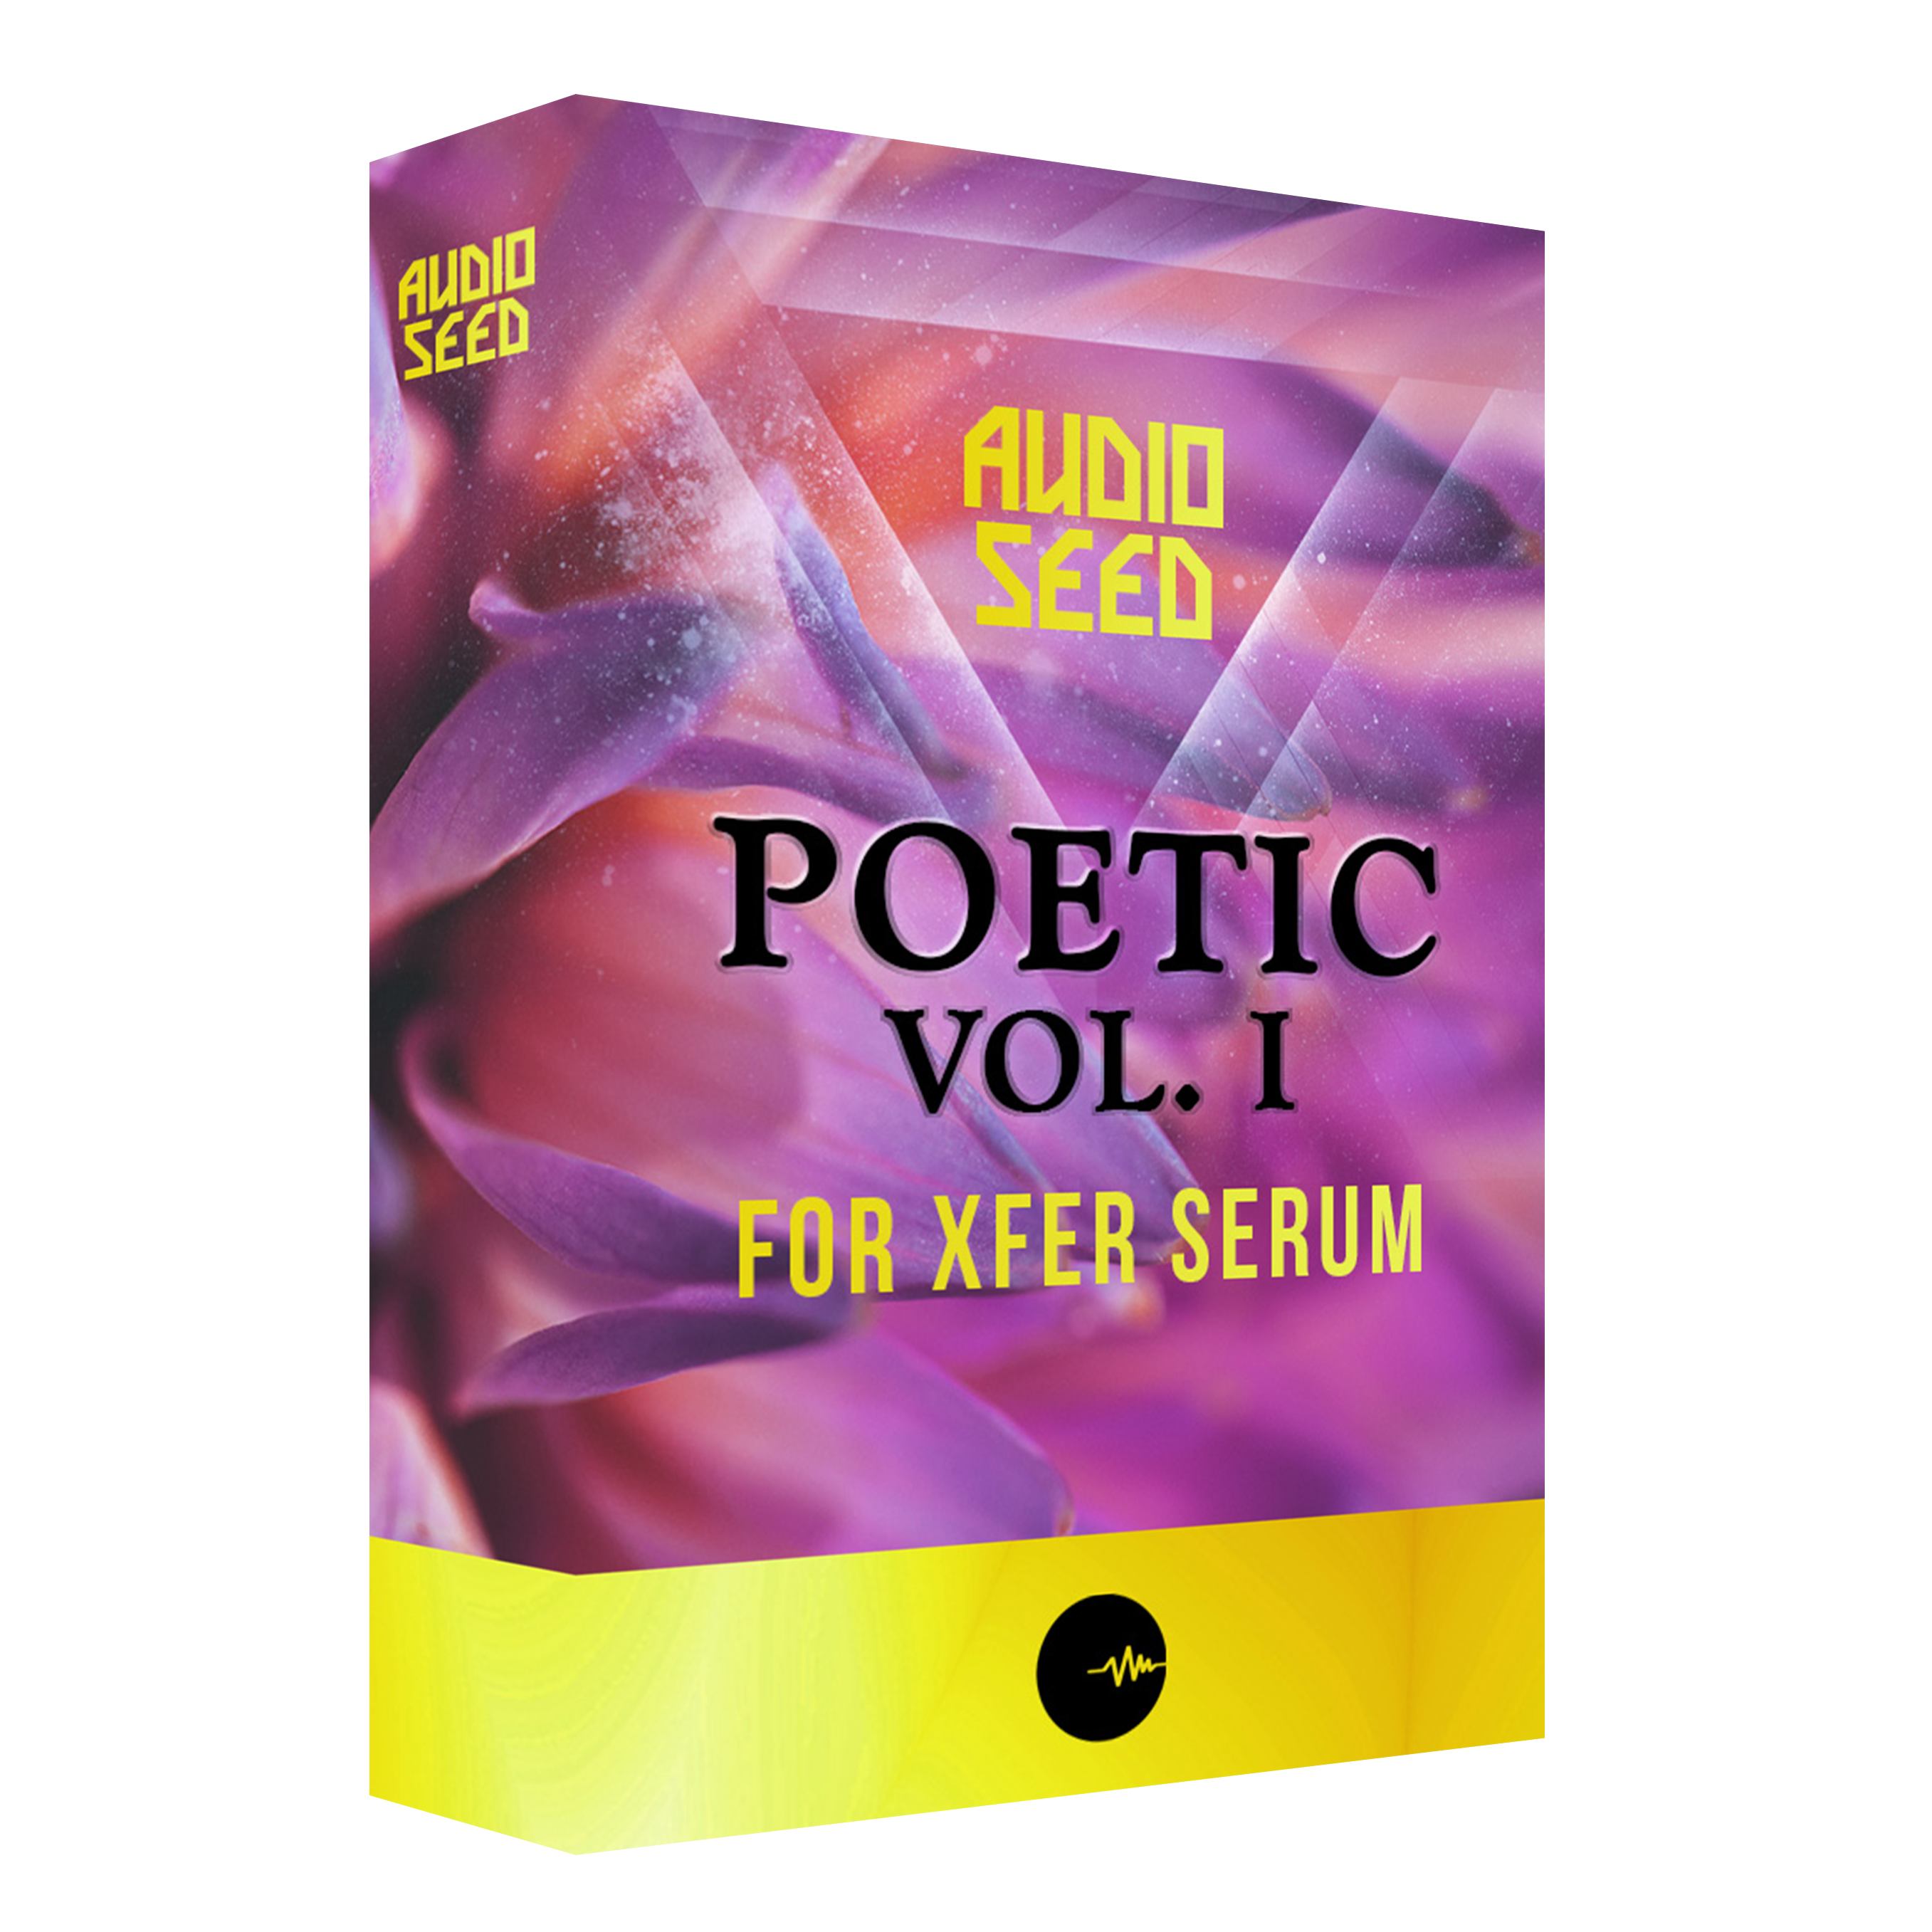 POETIC VOL.1 For Xfer Serum